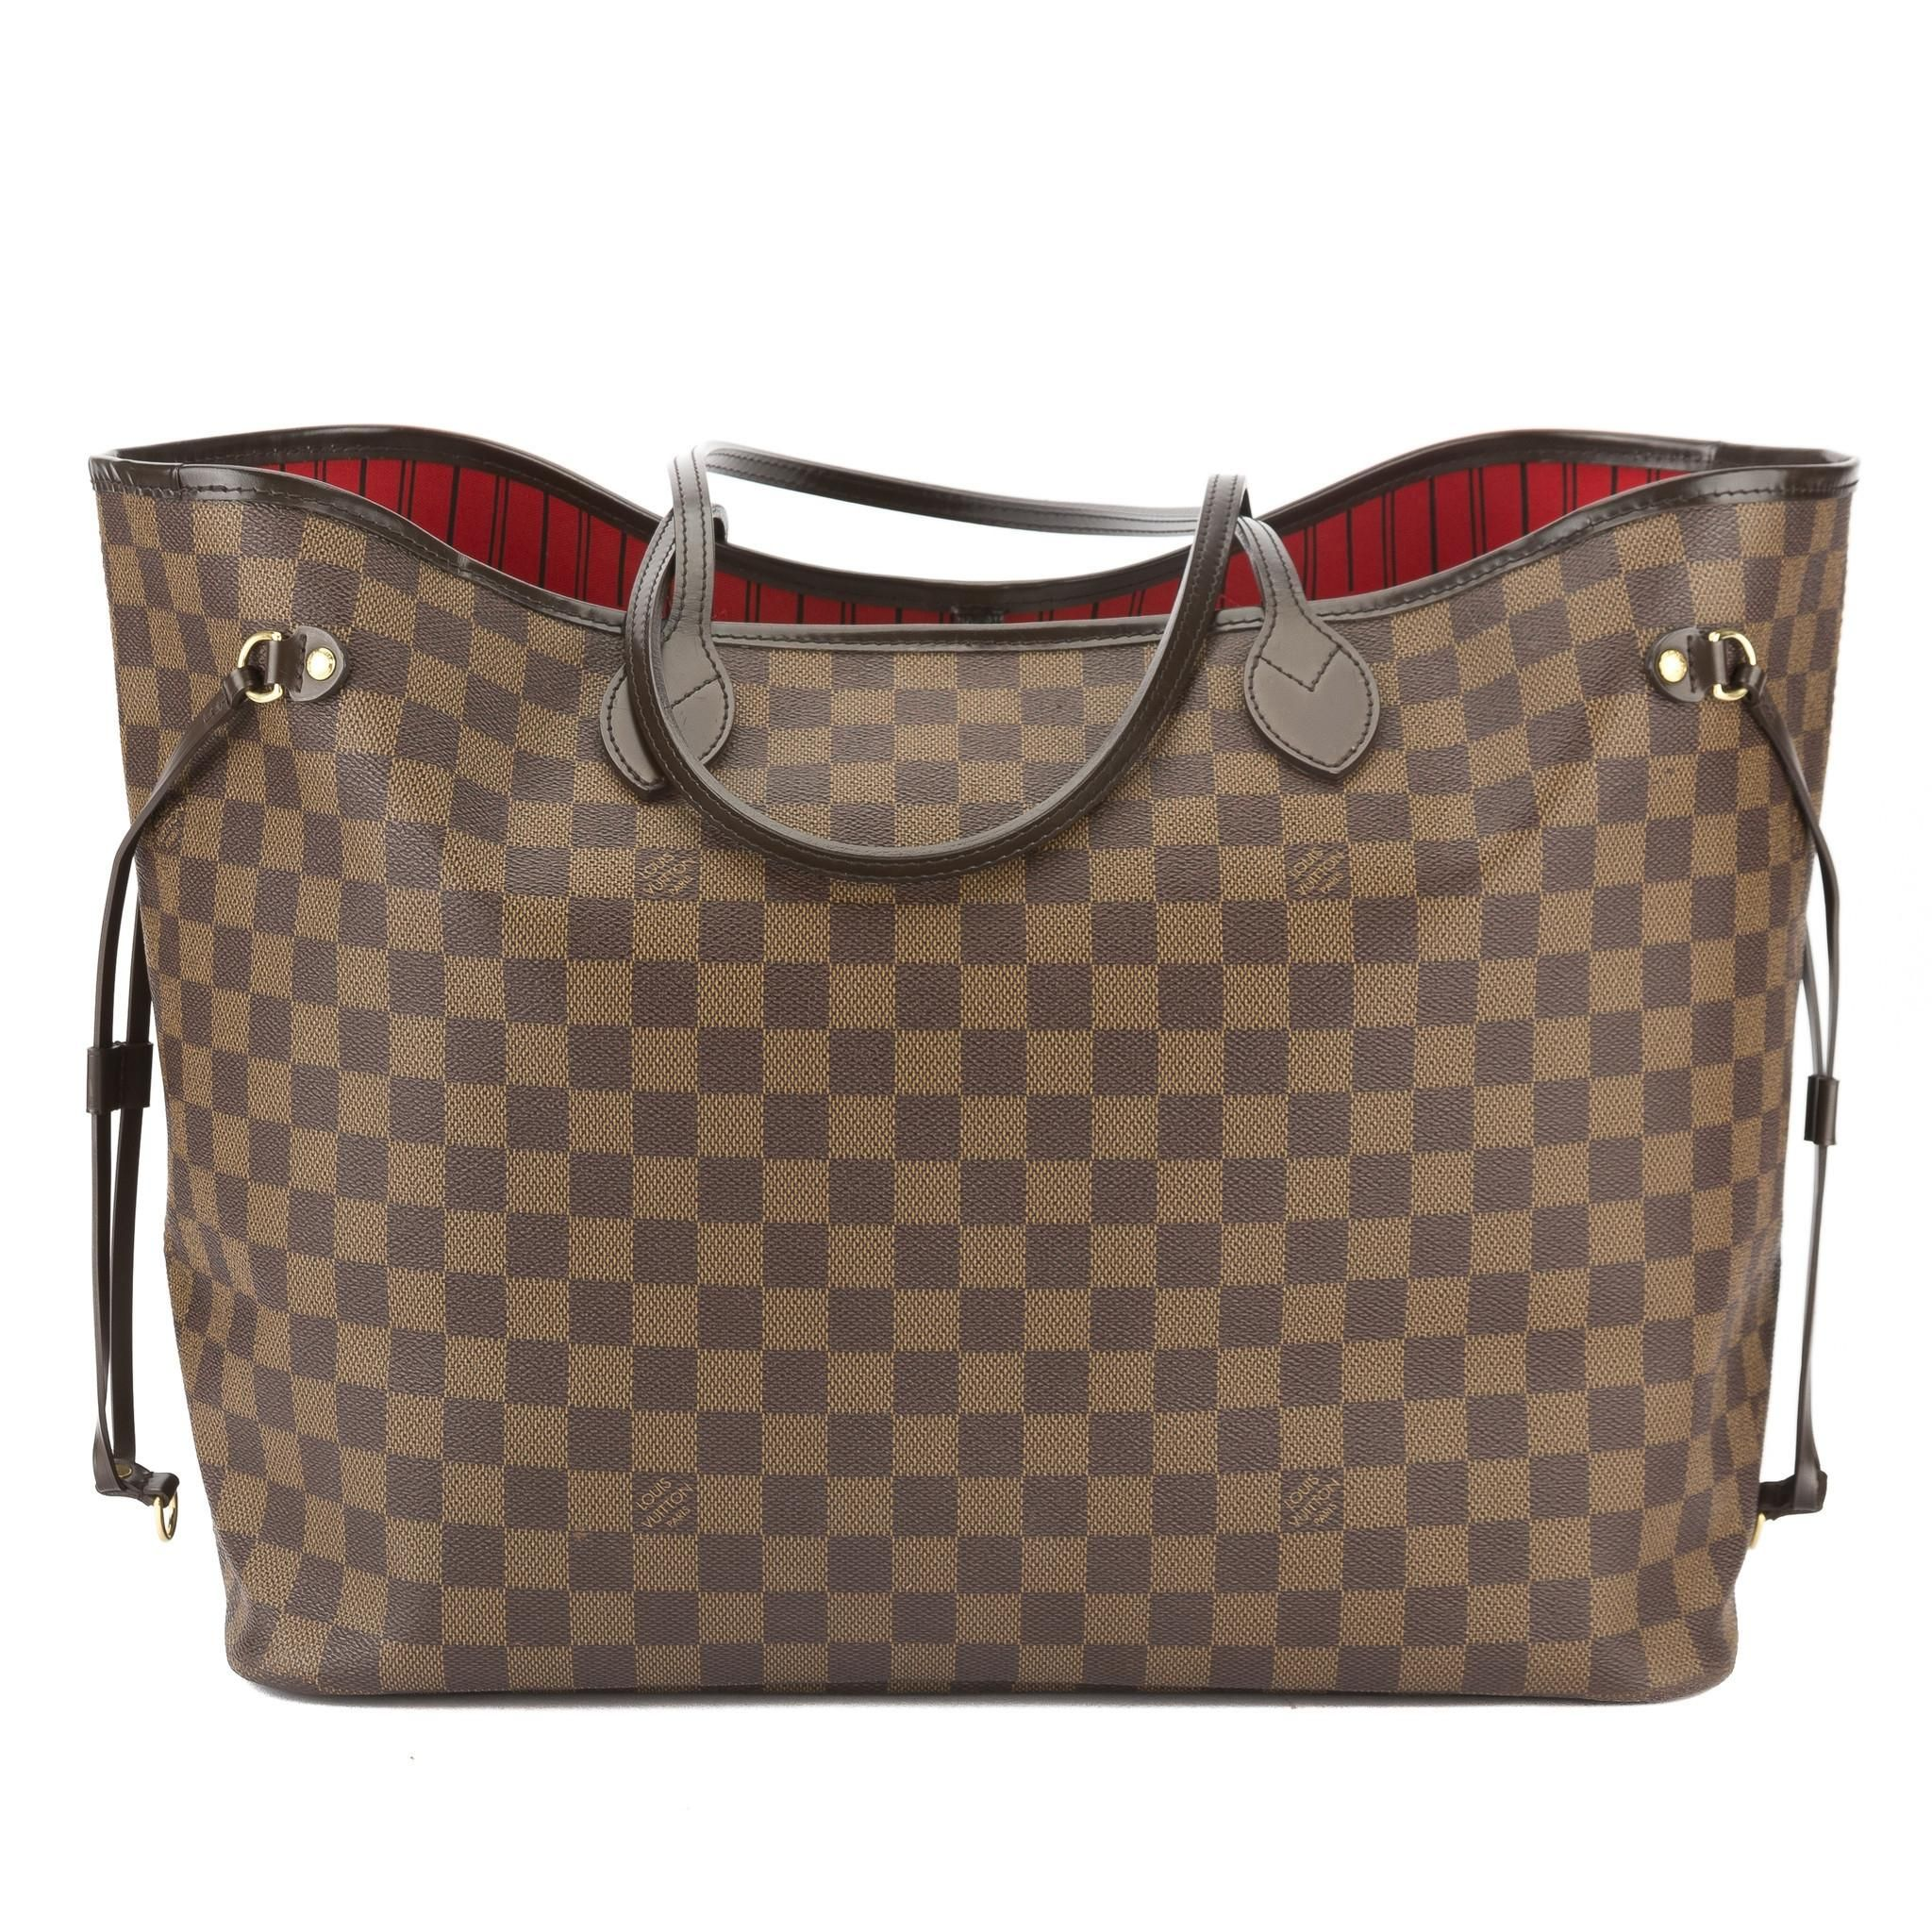 64ffaa29e55c4 Louis Vuitton Damier Ebene Neverfull Gm Bag. Get one of the hottest styles  of the